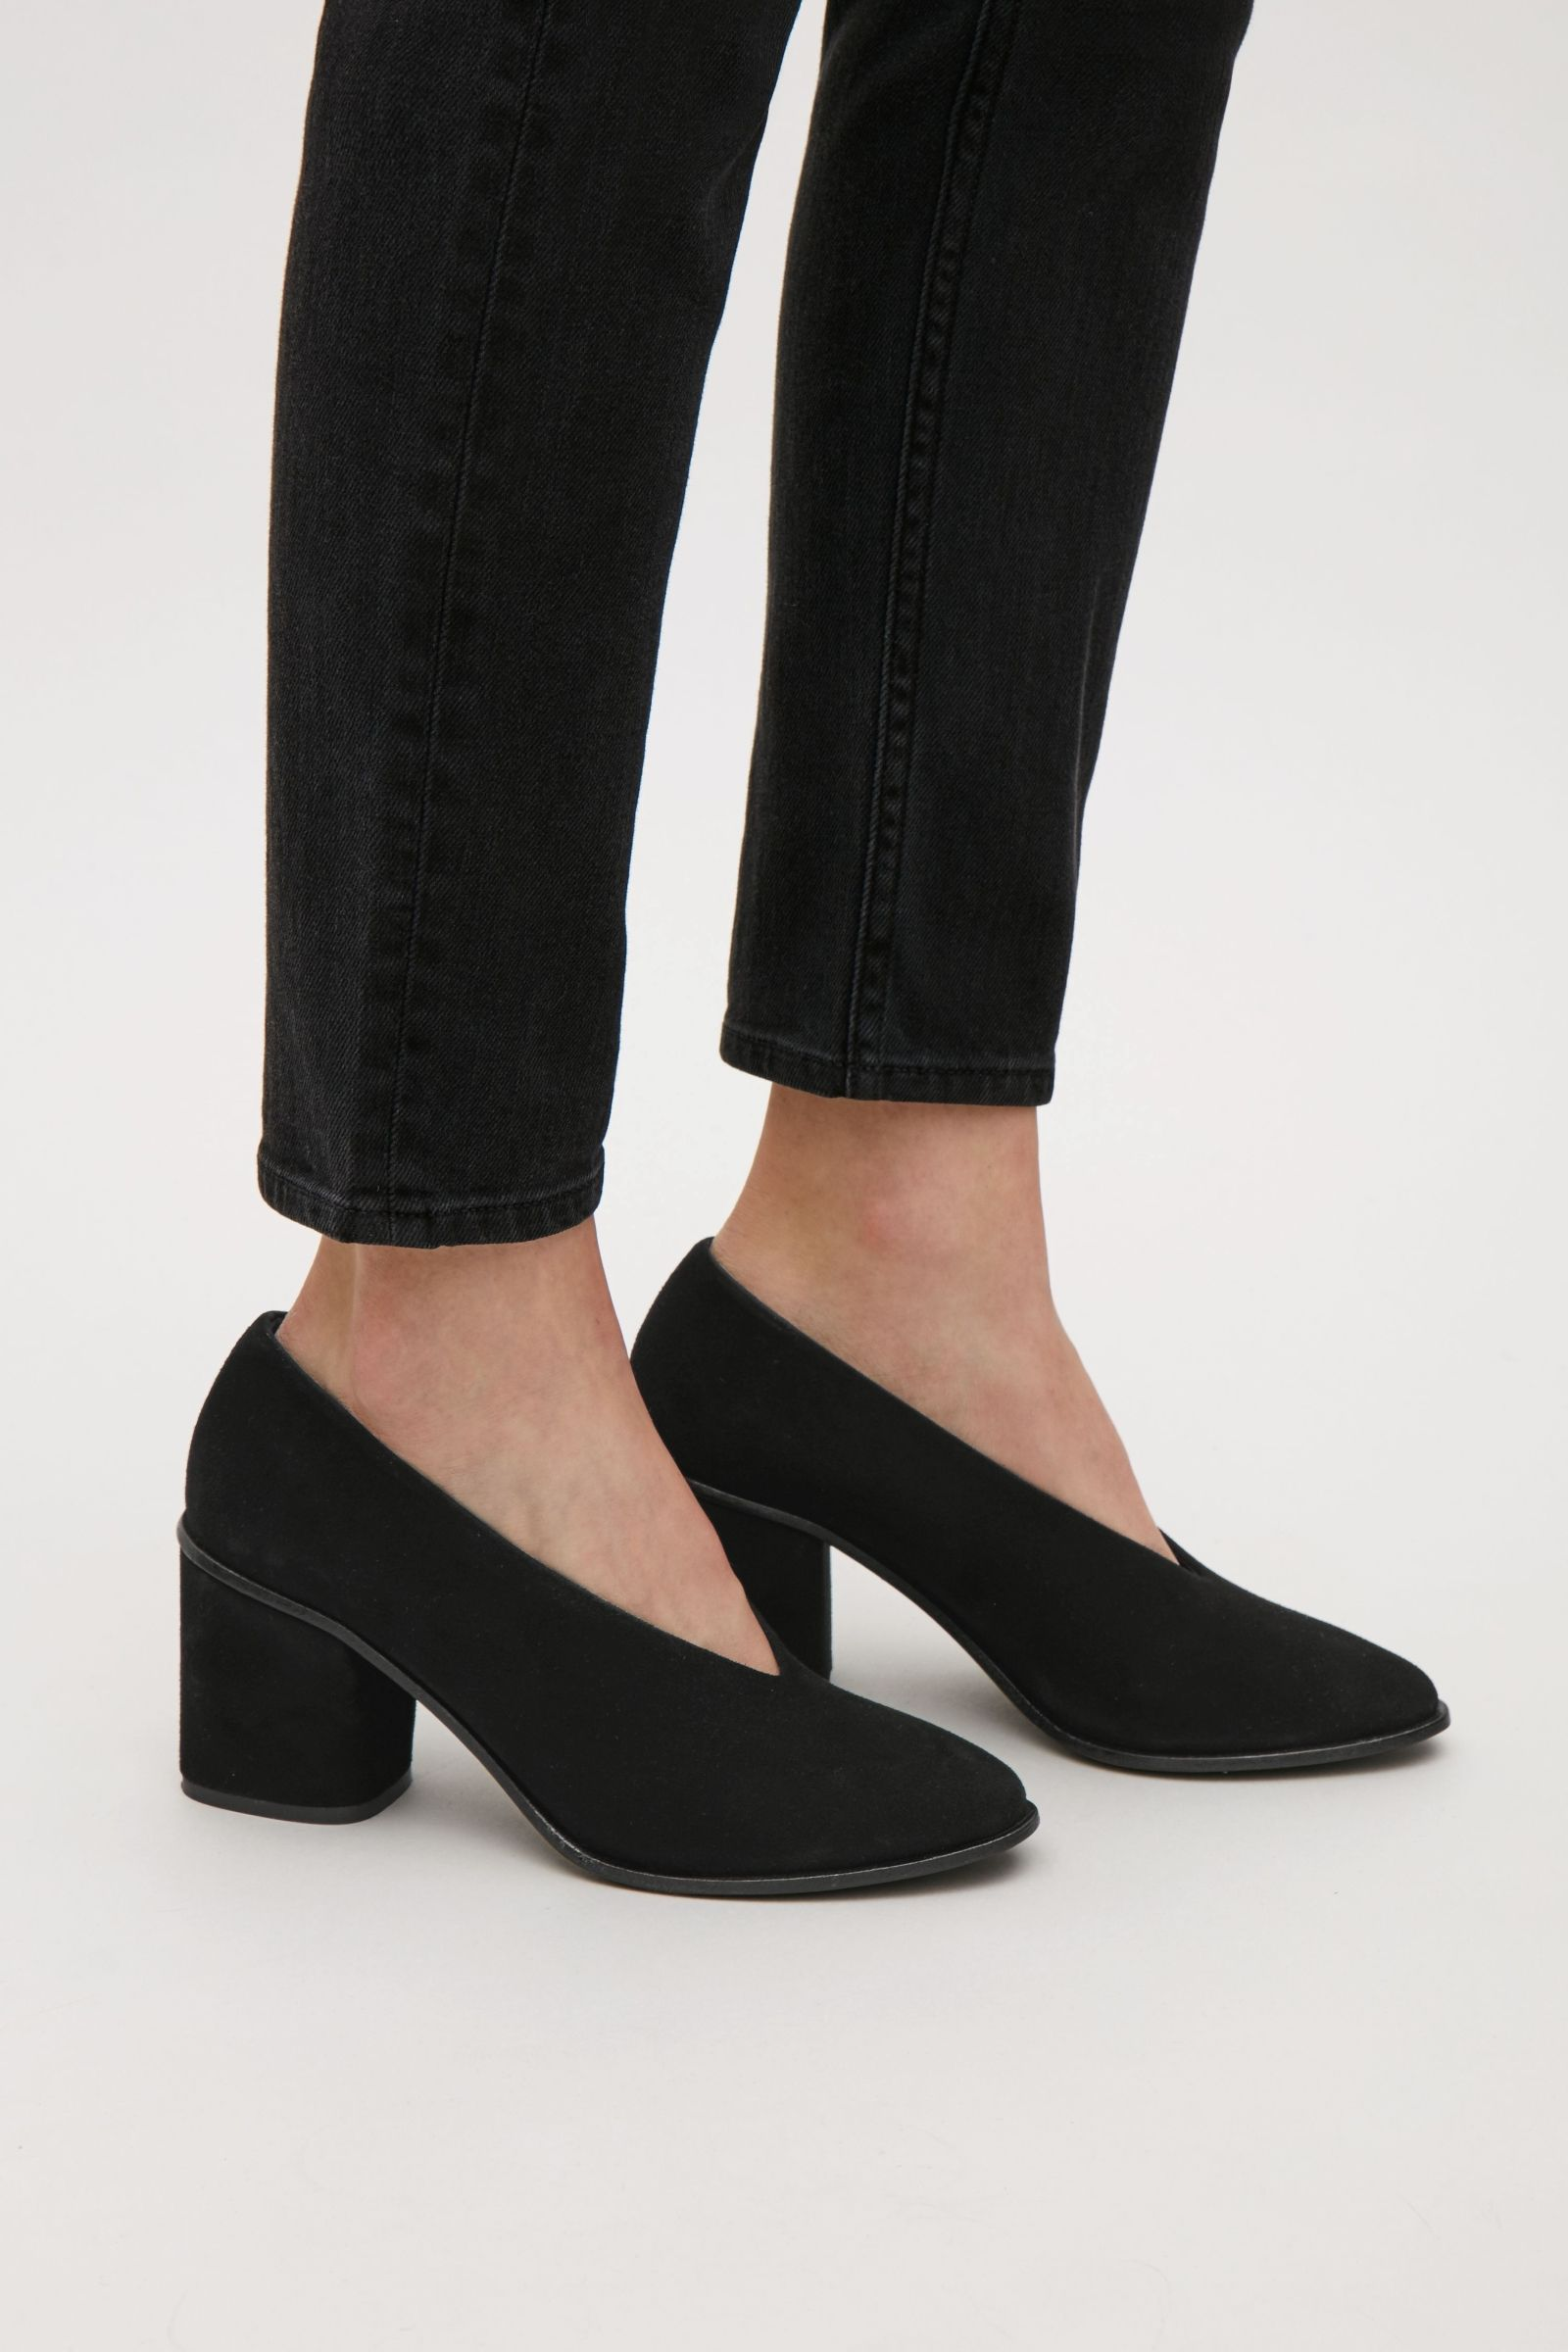 22b8f9af8ba COS image 2 of Chunky heel suede pumps in Black